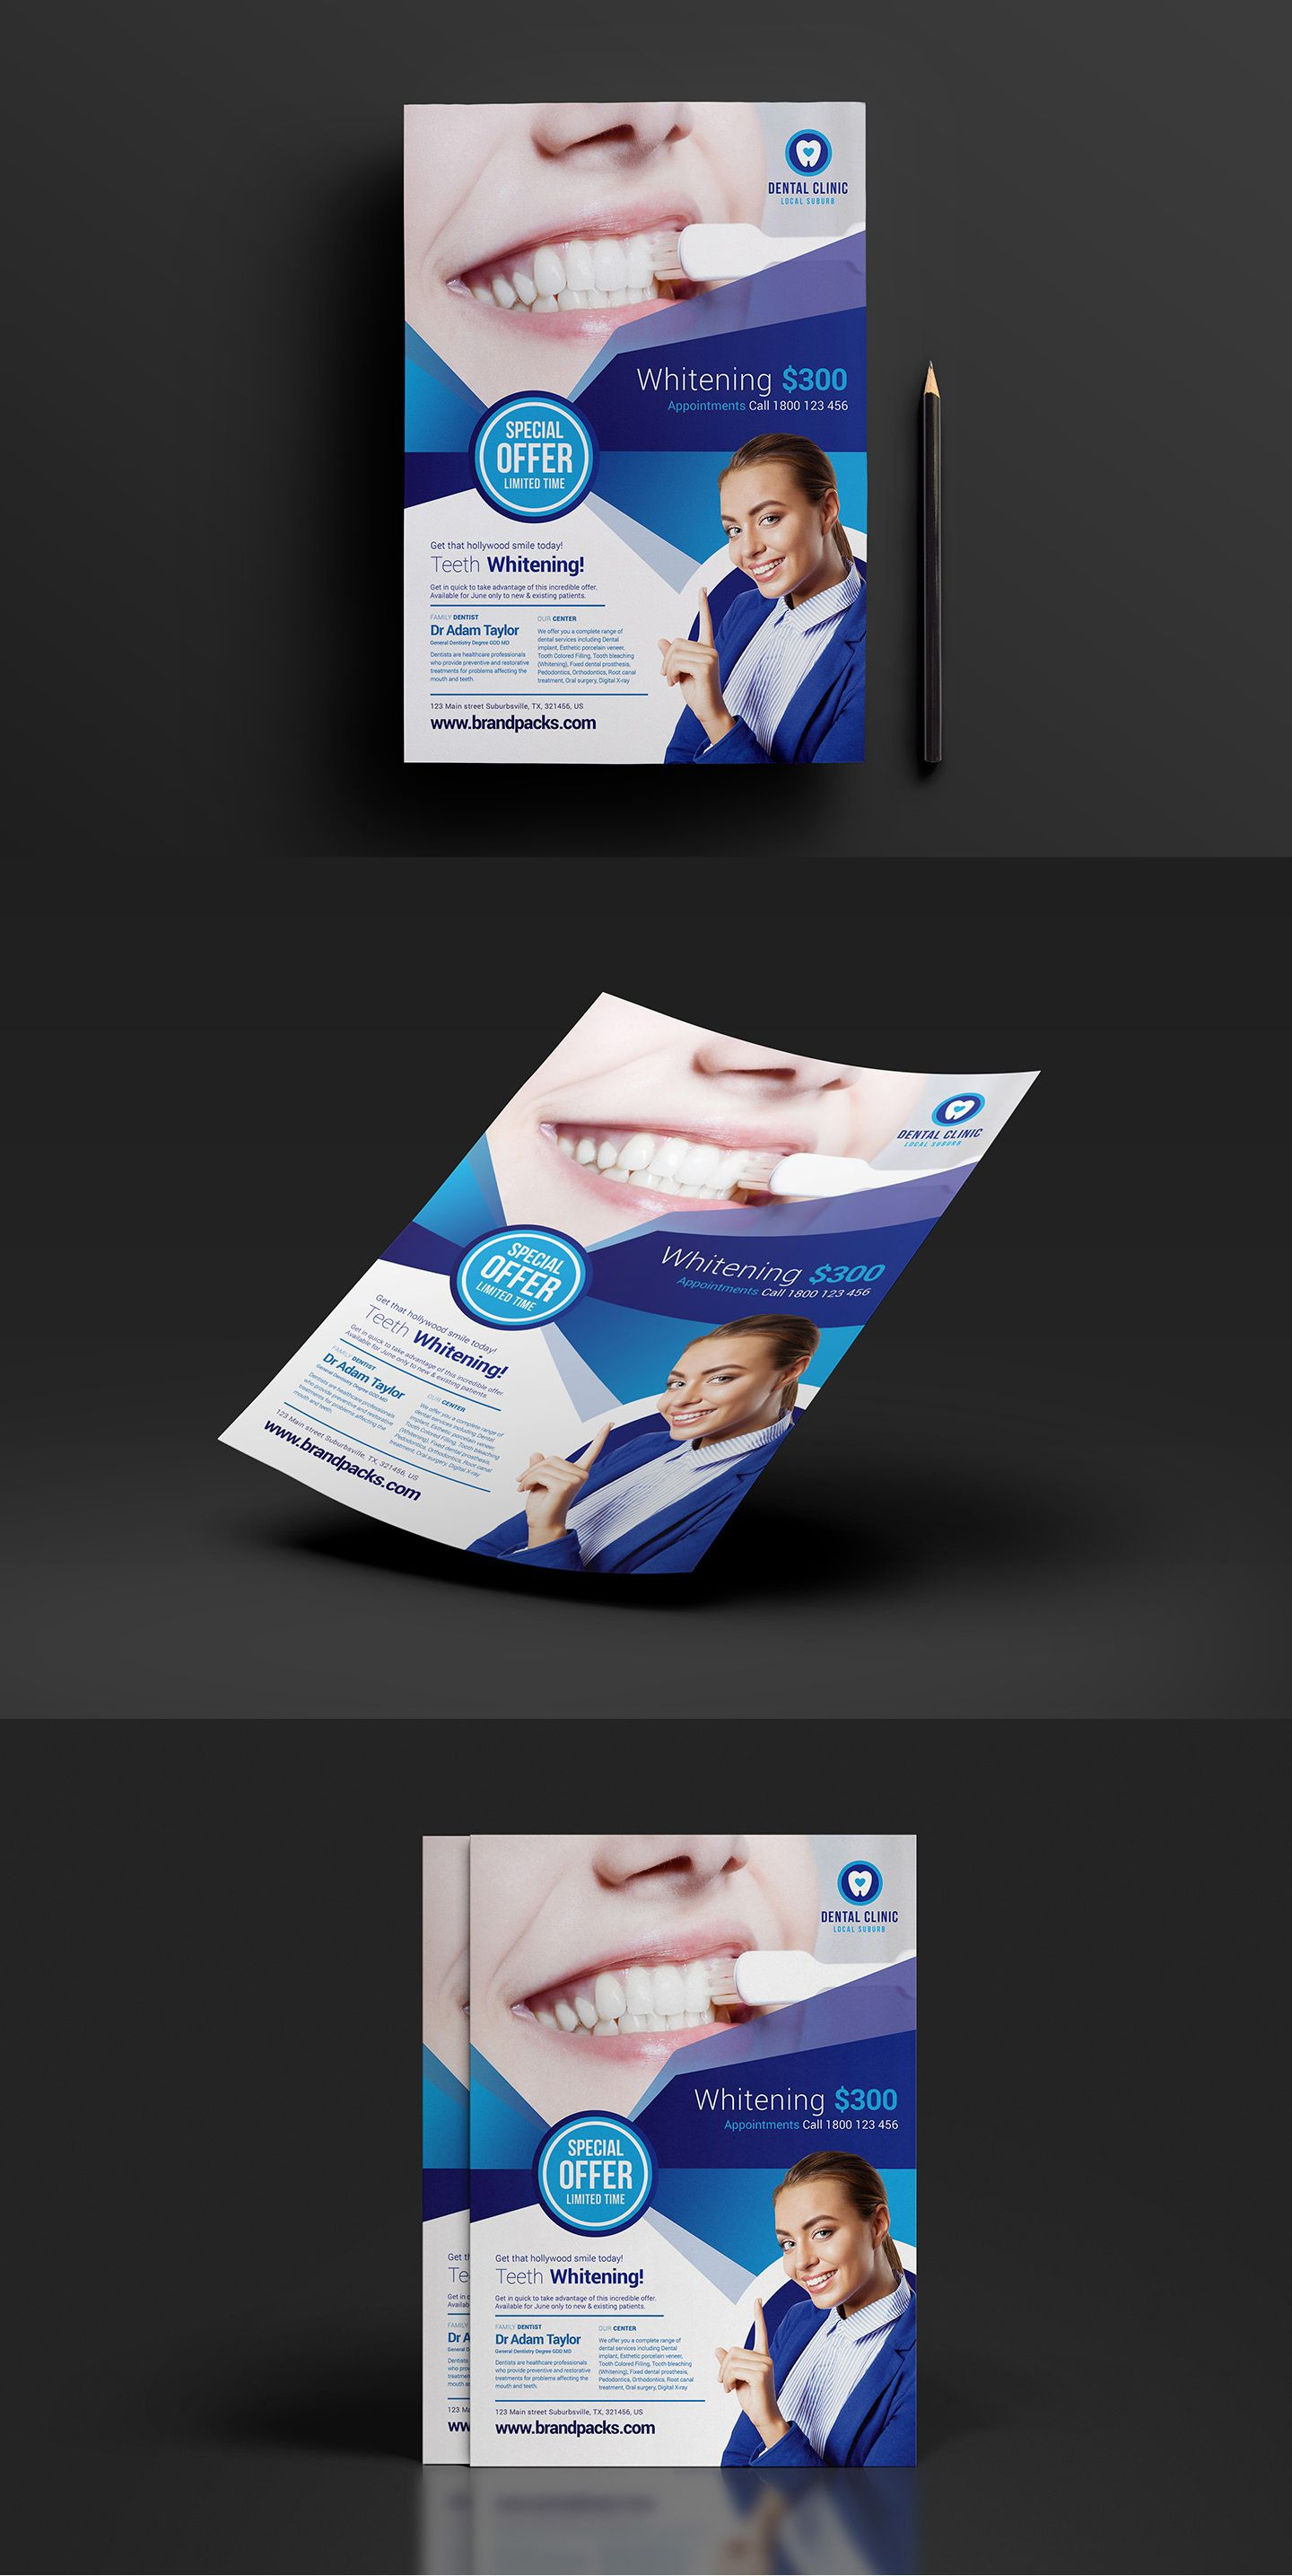 006 Unbelievable Free Print Ad Template Highest Quality  Templates Real Estate For WordFull